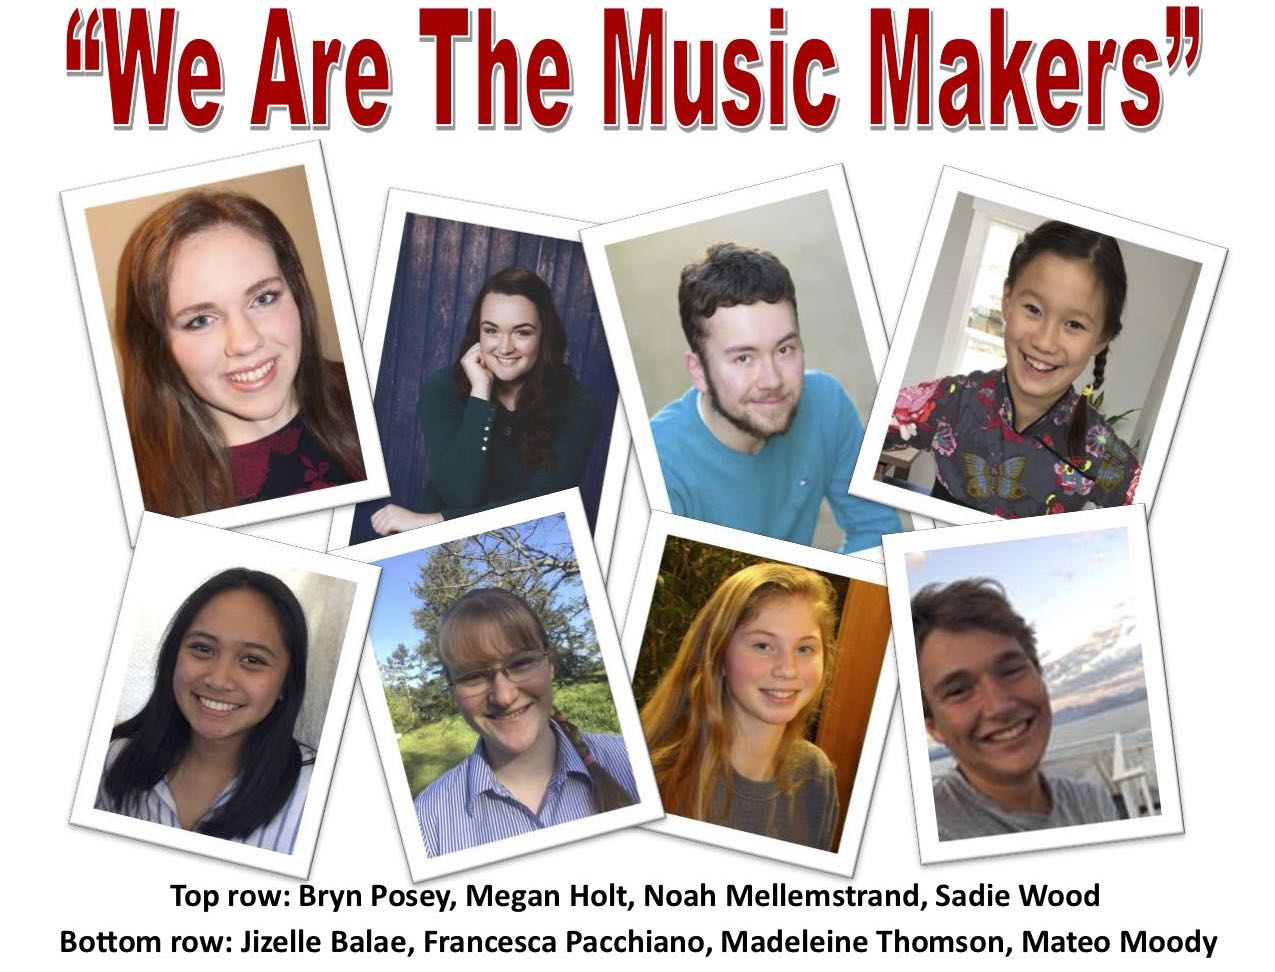 2018_06_June_We_Are_The_Music_Makers_arch